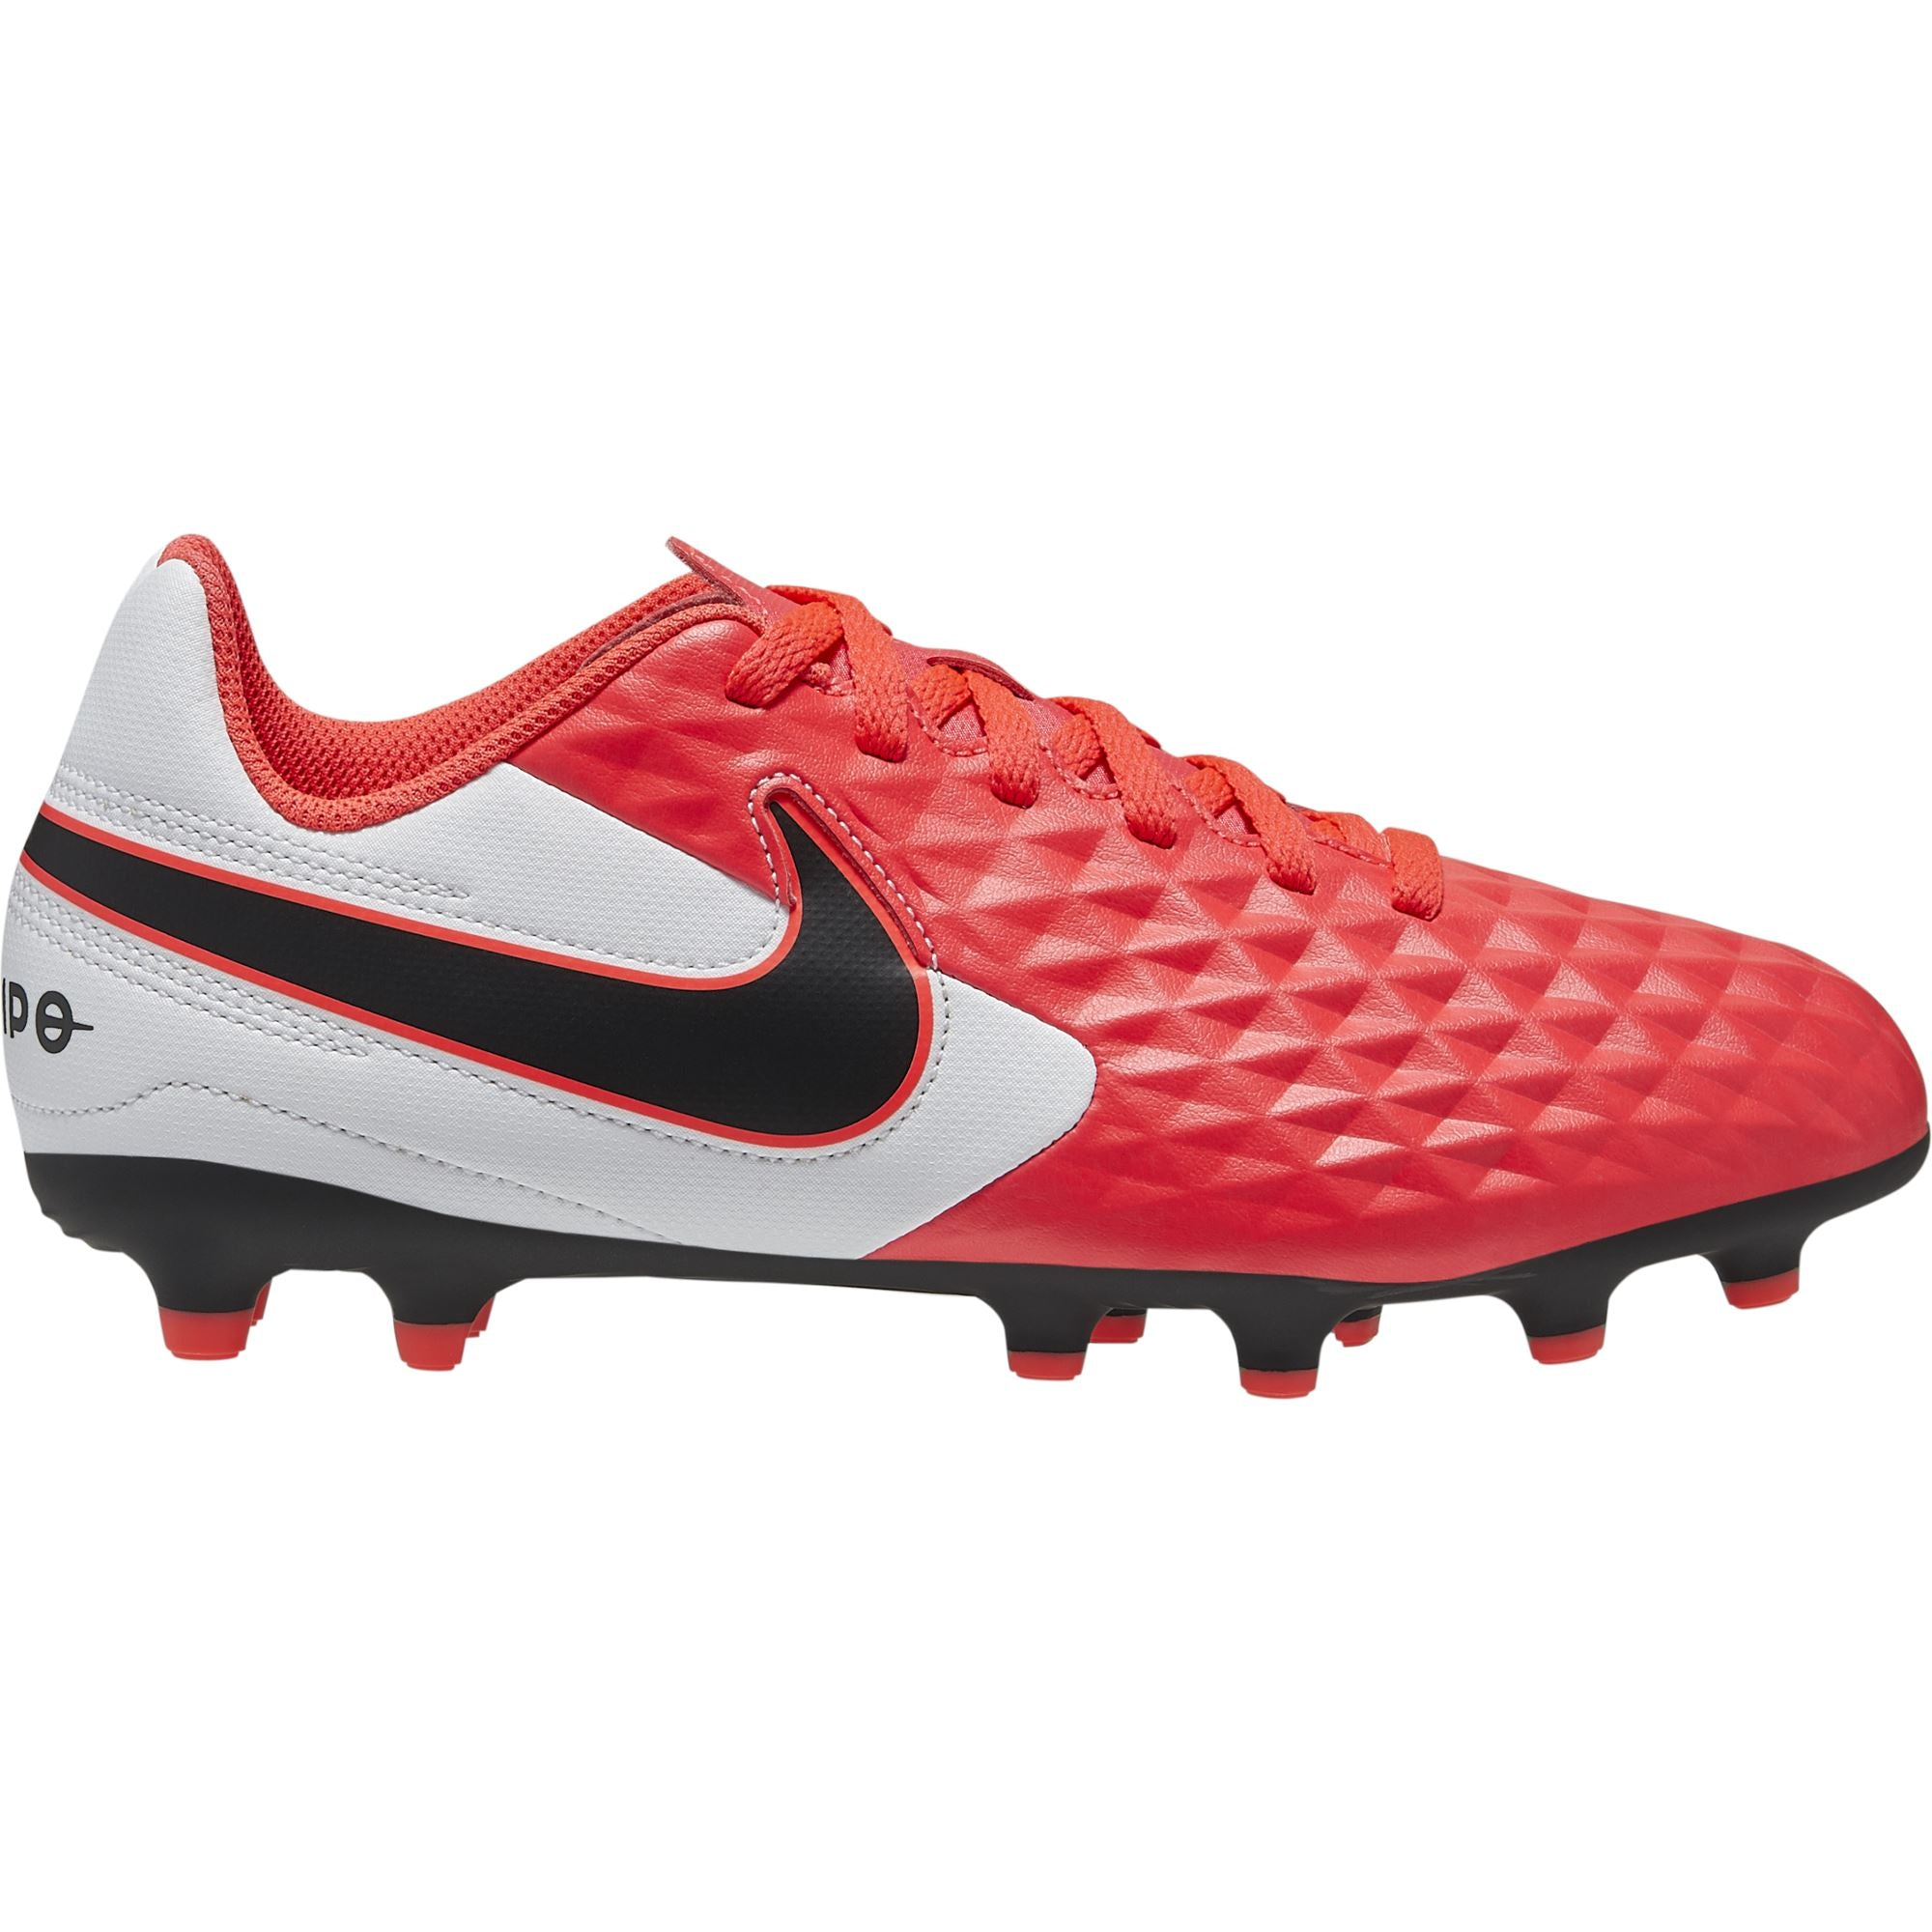 Nike Legend 8 Academy - Laser Crimson/Black/White SP-Footwear-Mens Nike